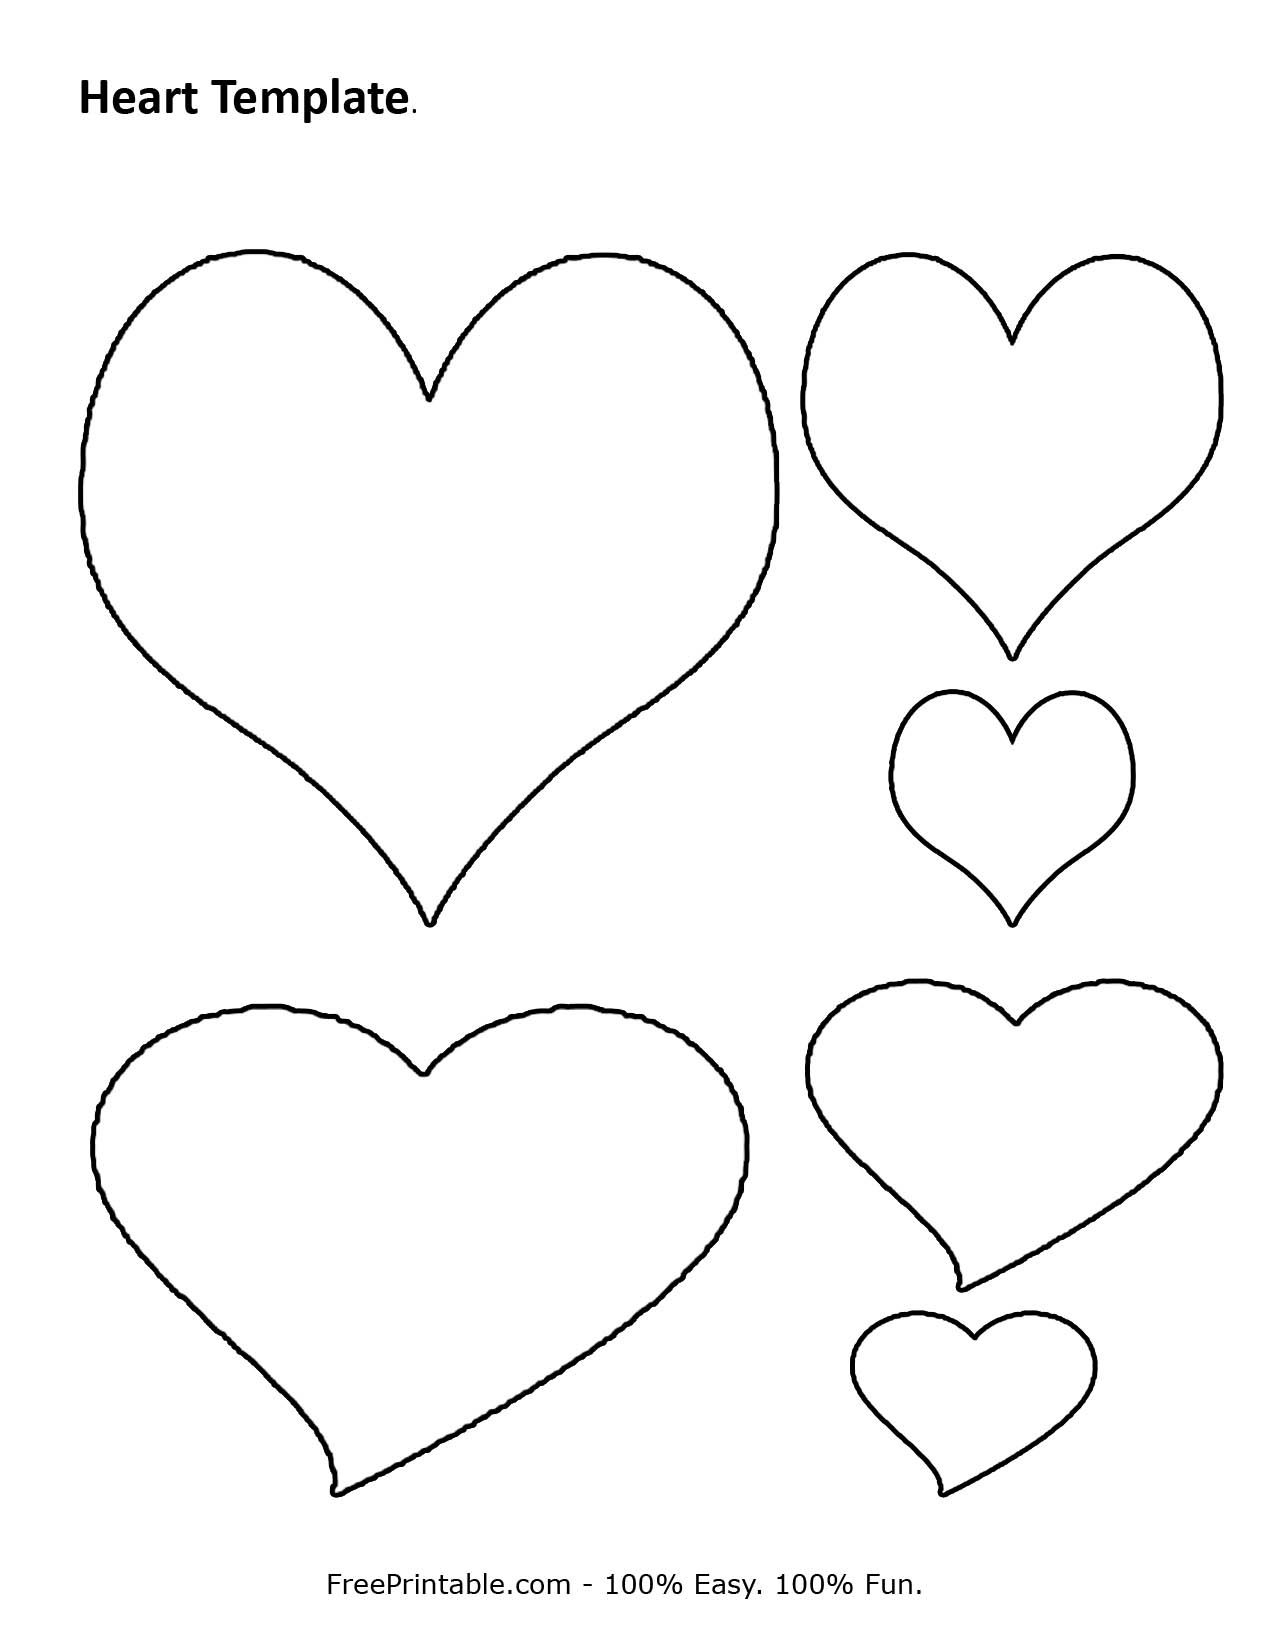 Free Printable Heart Template   Cupid Has A Heart On   Pinterest - Free Printable Heart Designs